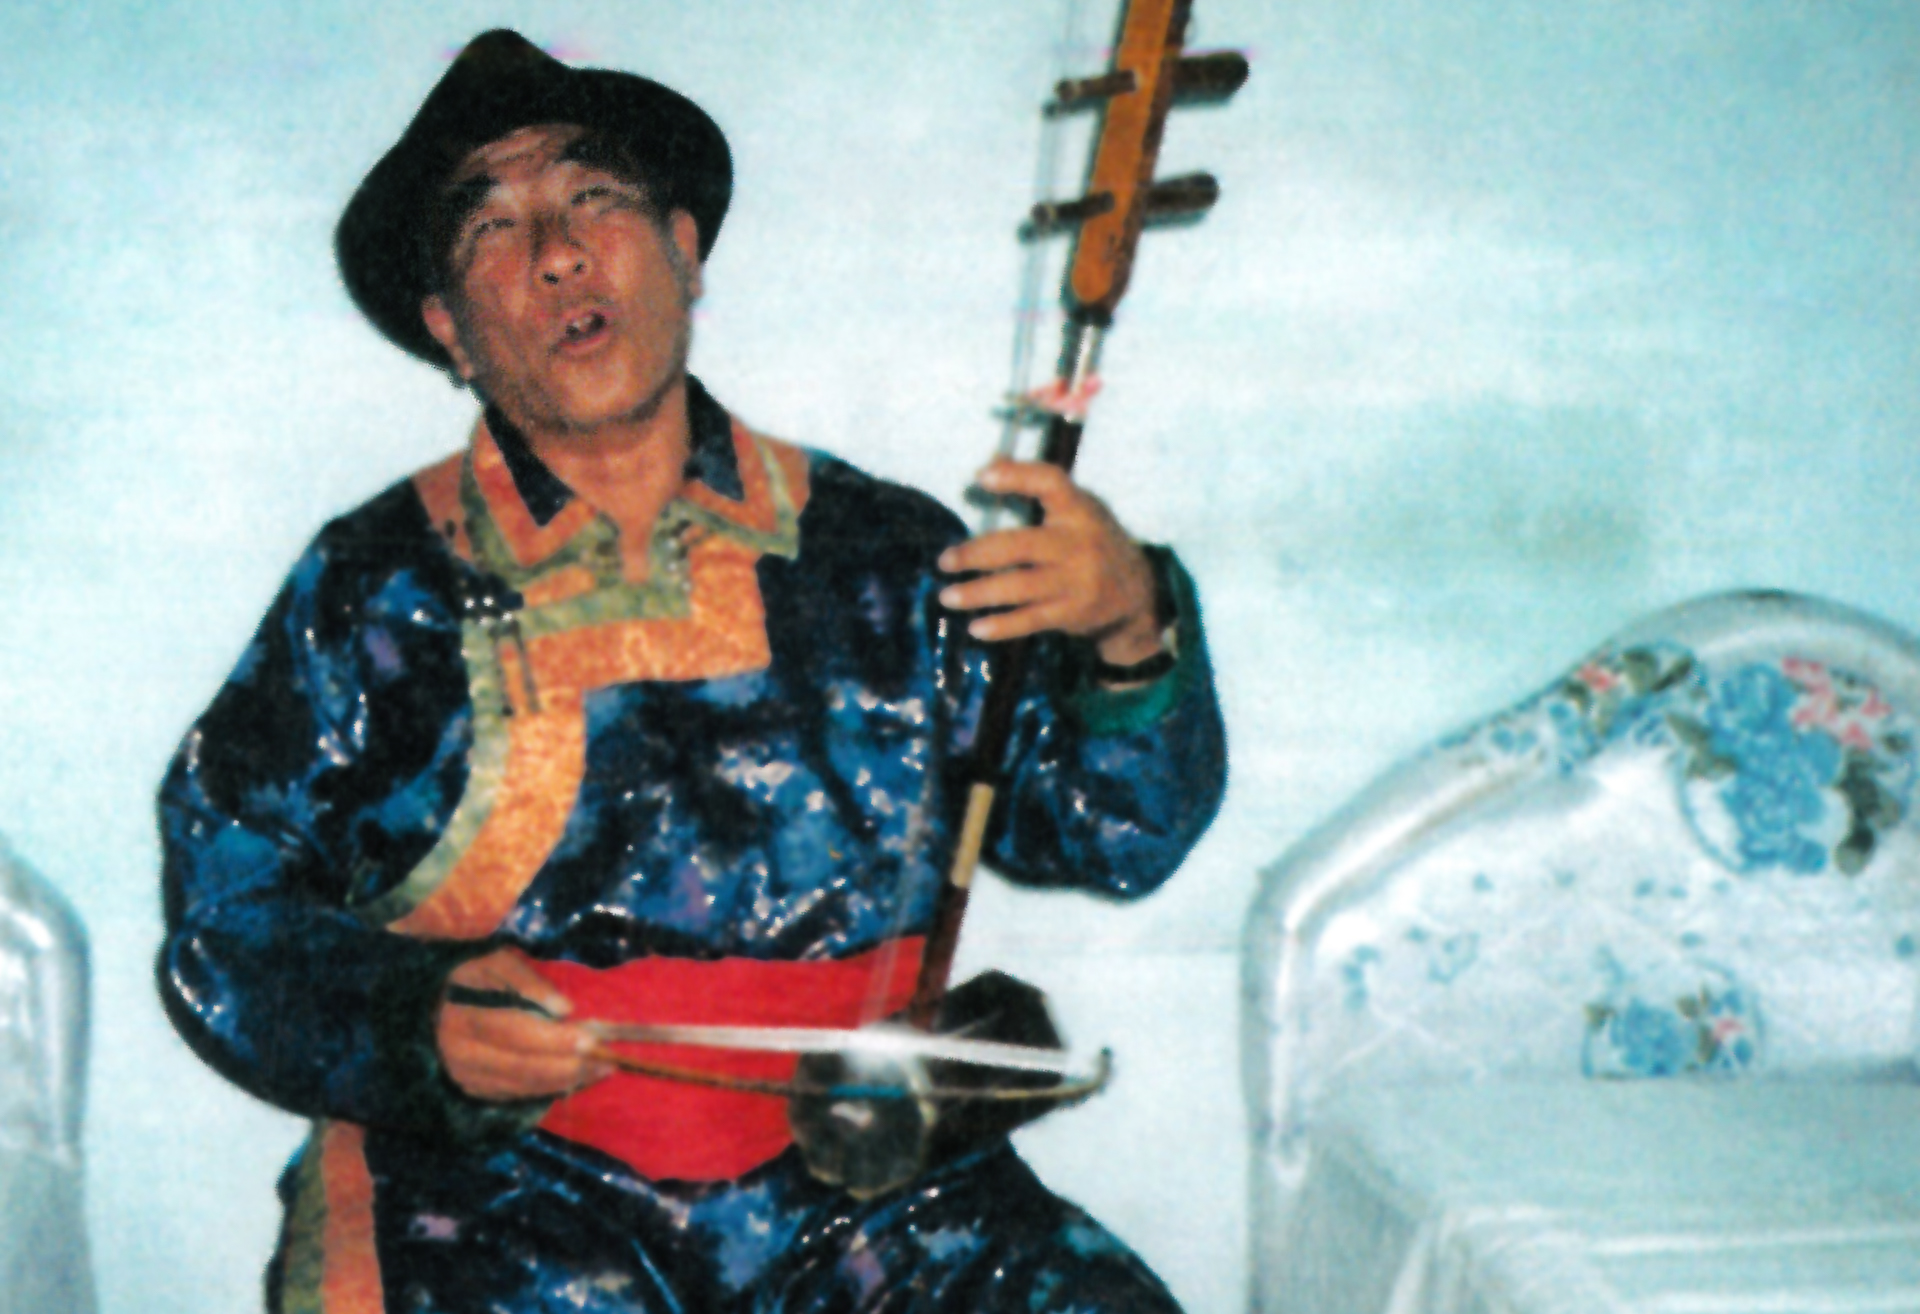 picture of the mongolian bard nimaodzer, singing and playing his instrument